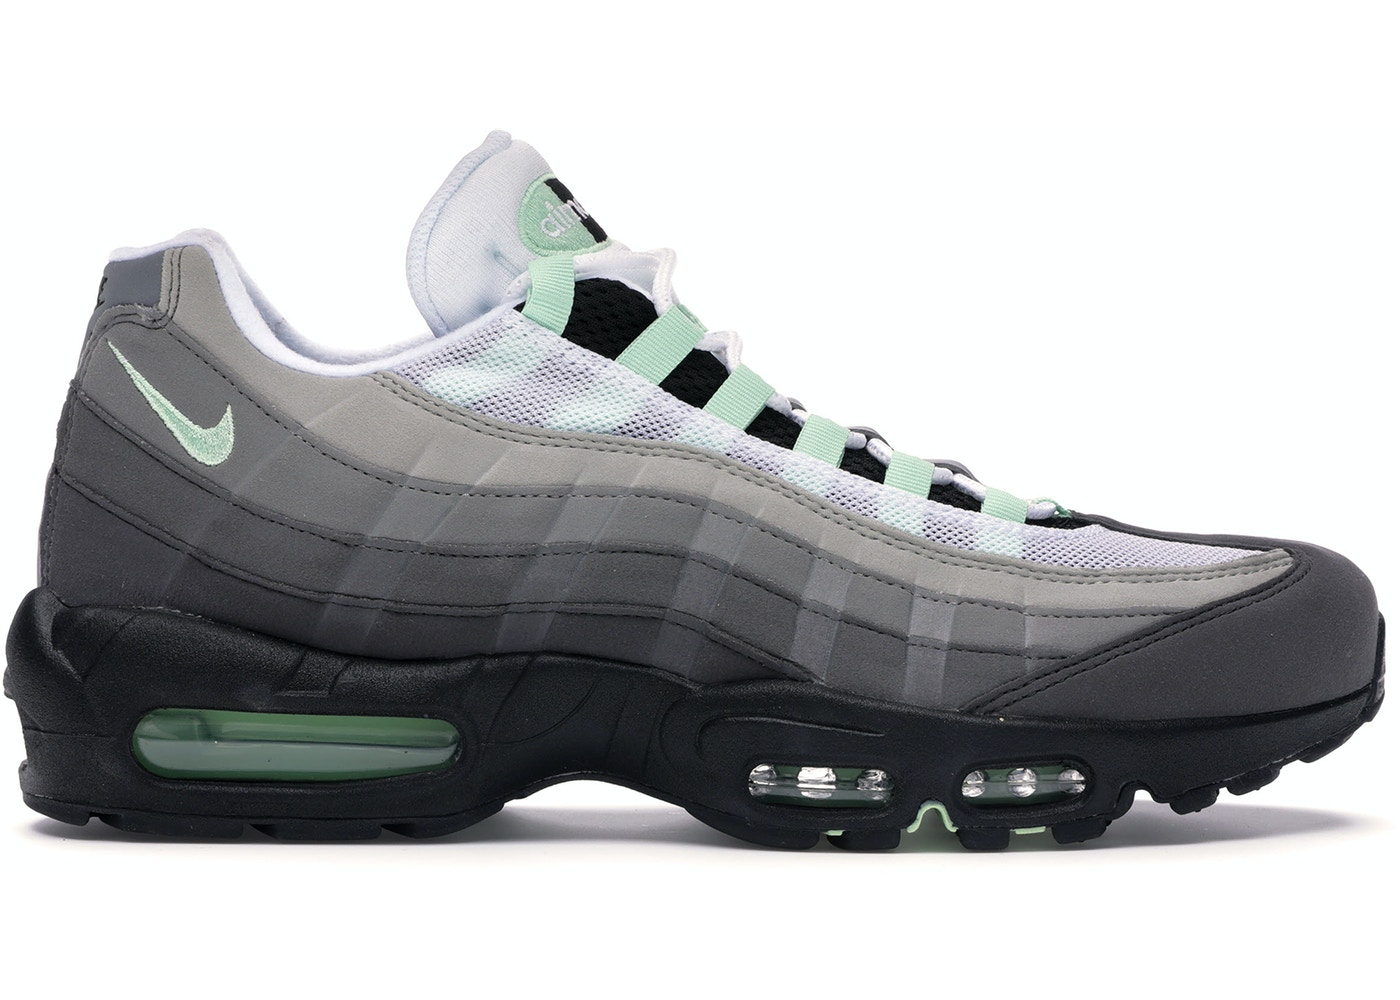 wholesale dealer ff946 27833 Buy Nike Air Max 95 Shoes & Deadstock Sneakers